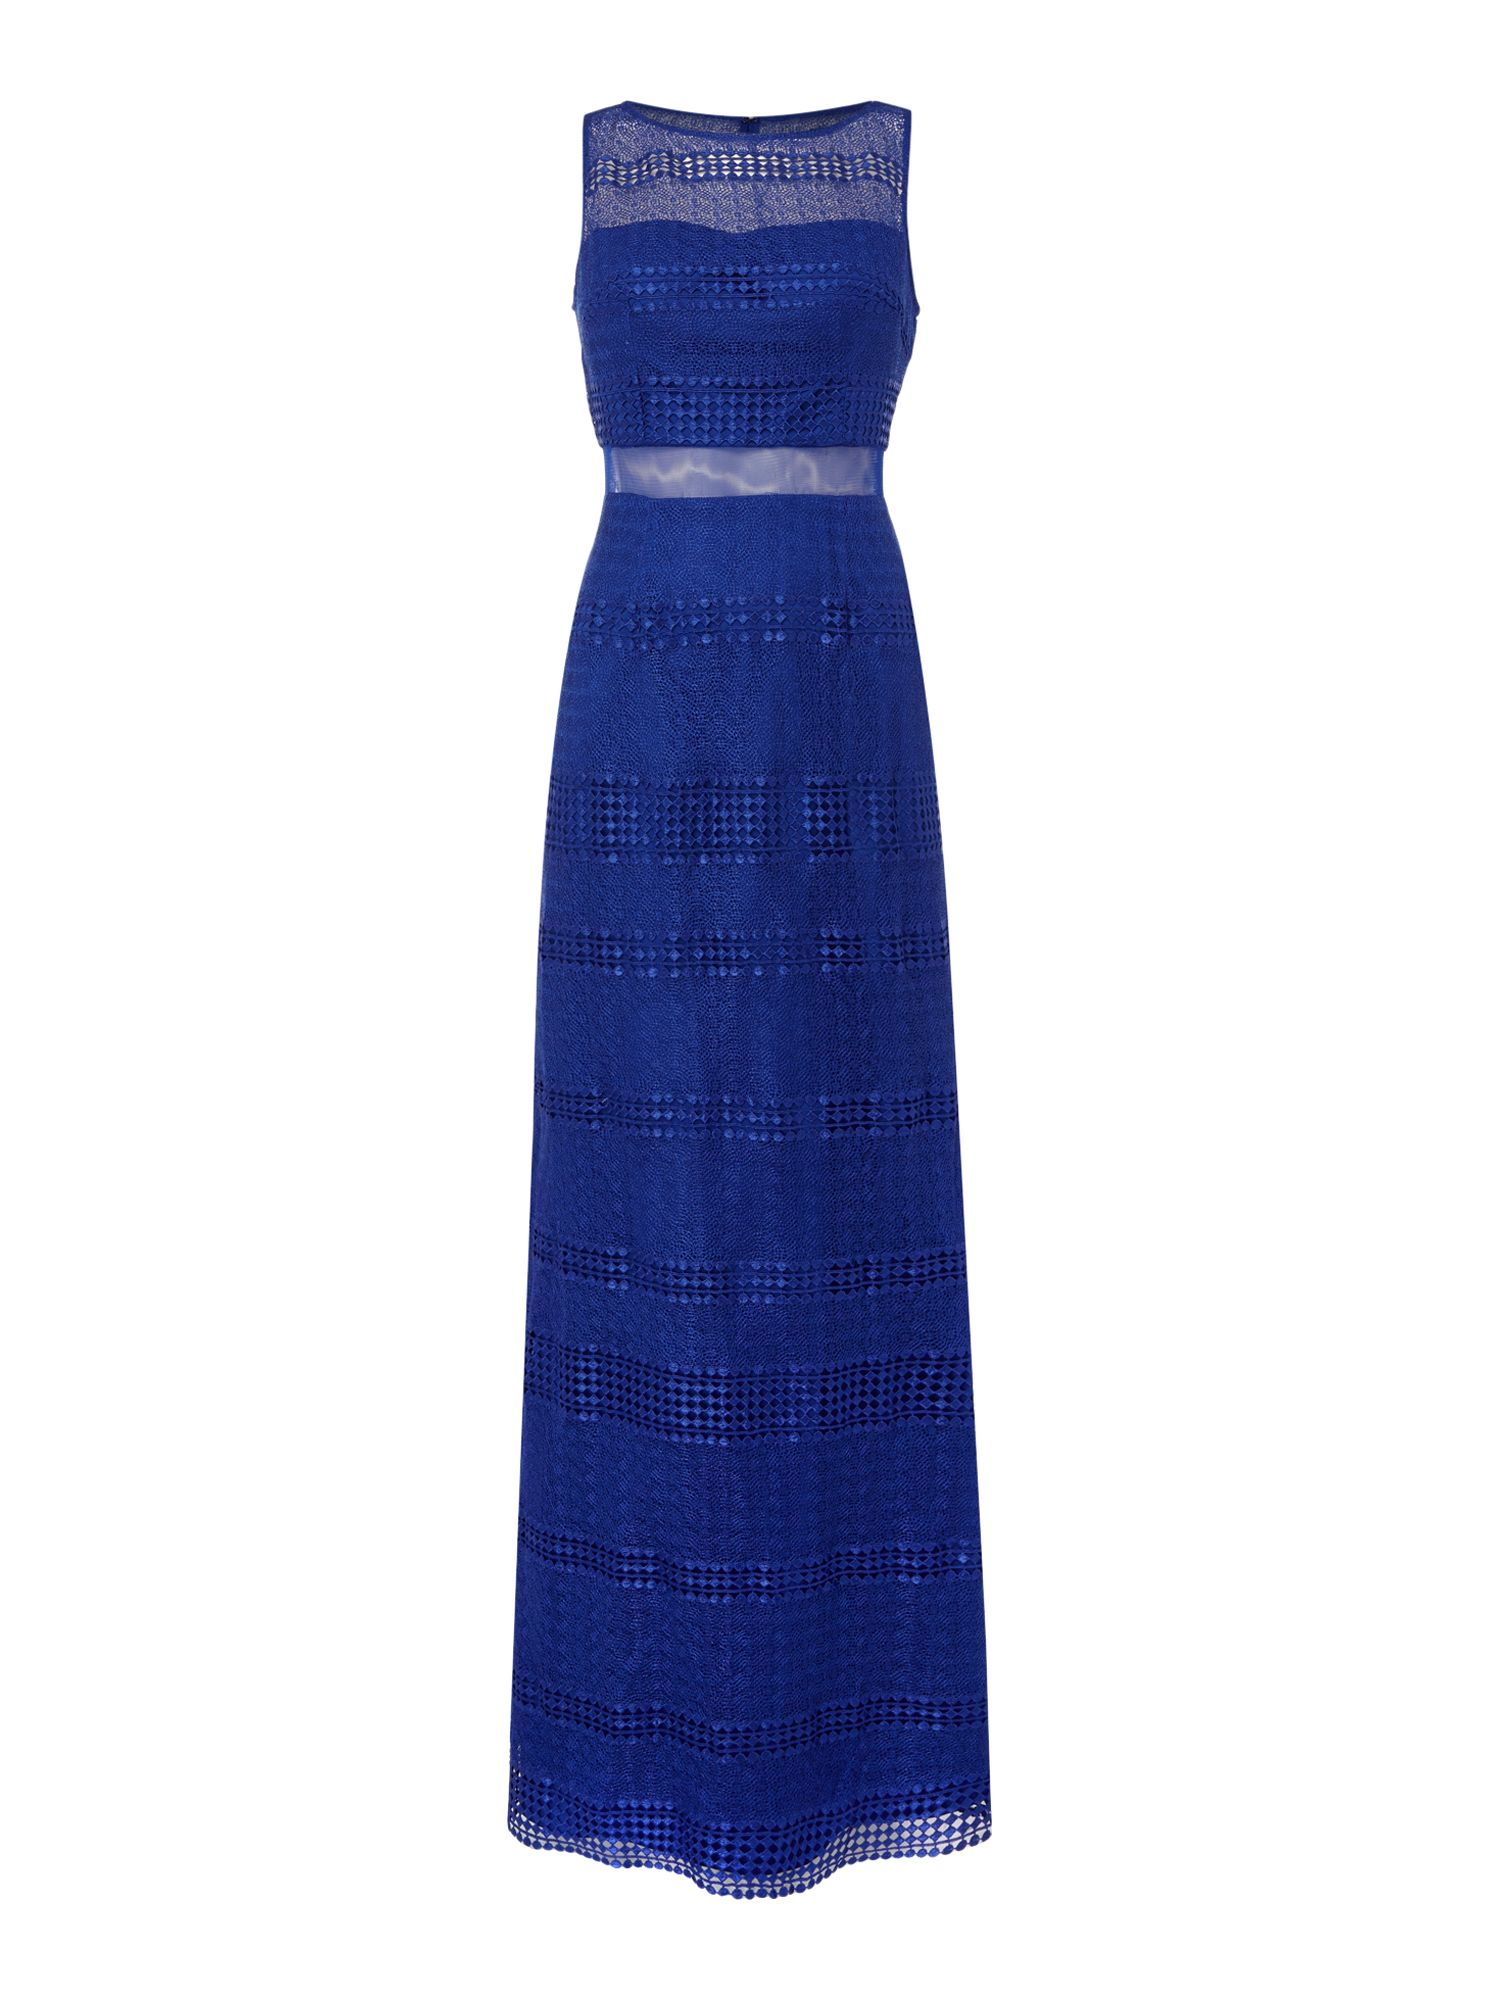 Adrianna Papell Sleeveless Lace Navy Gown, Blue